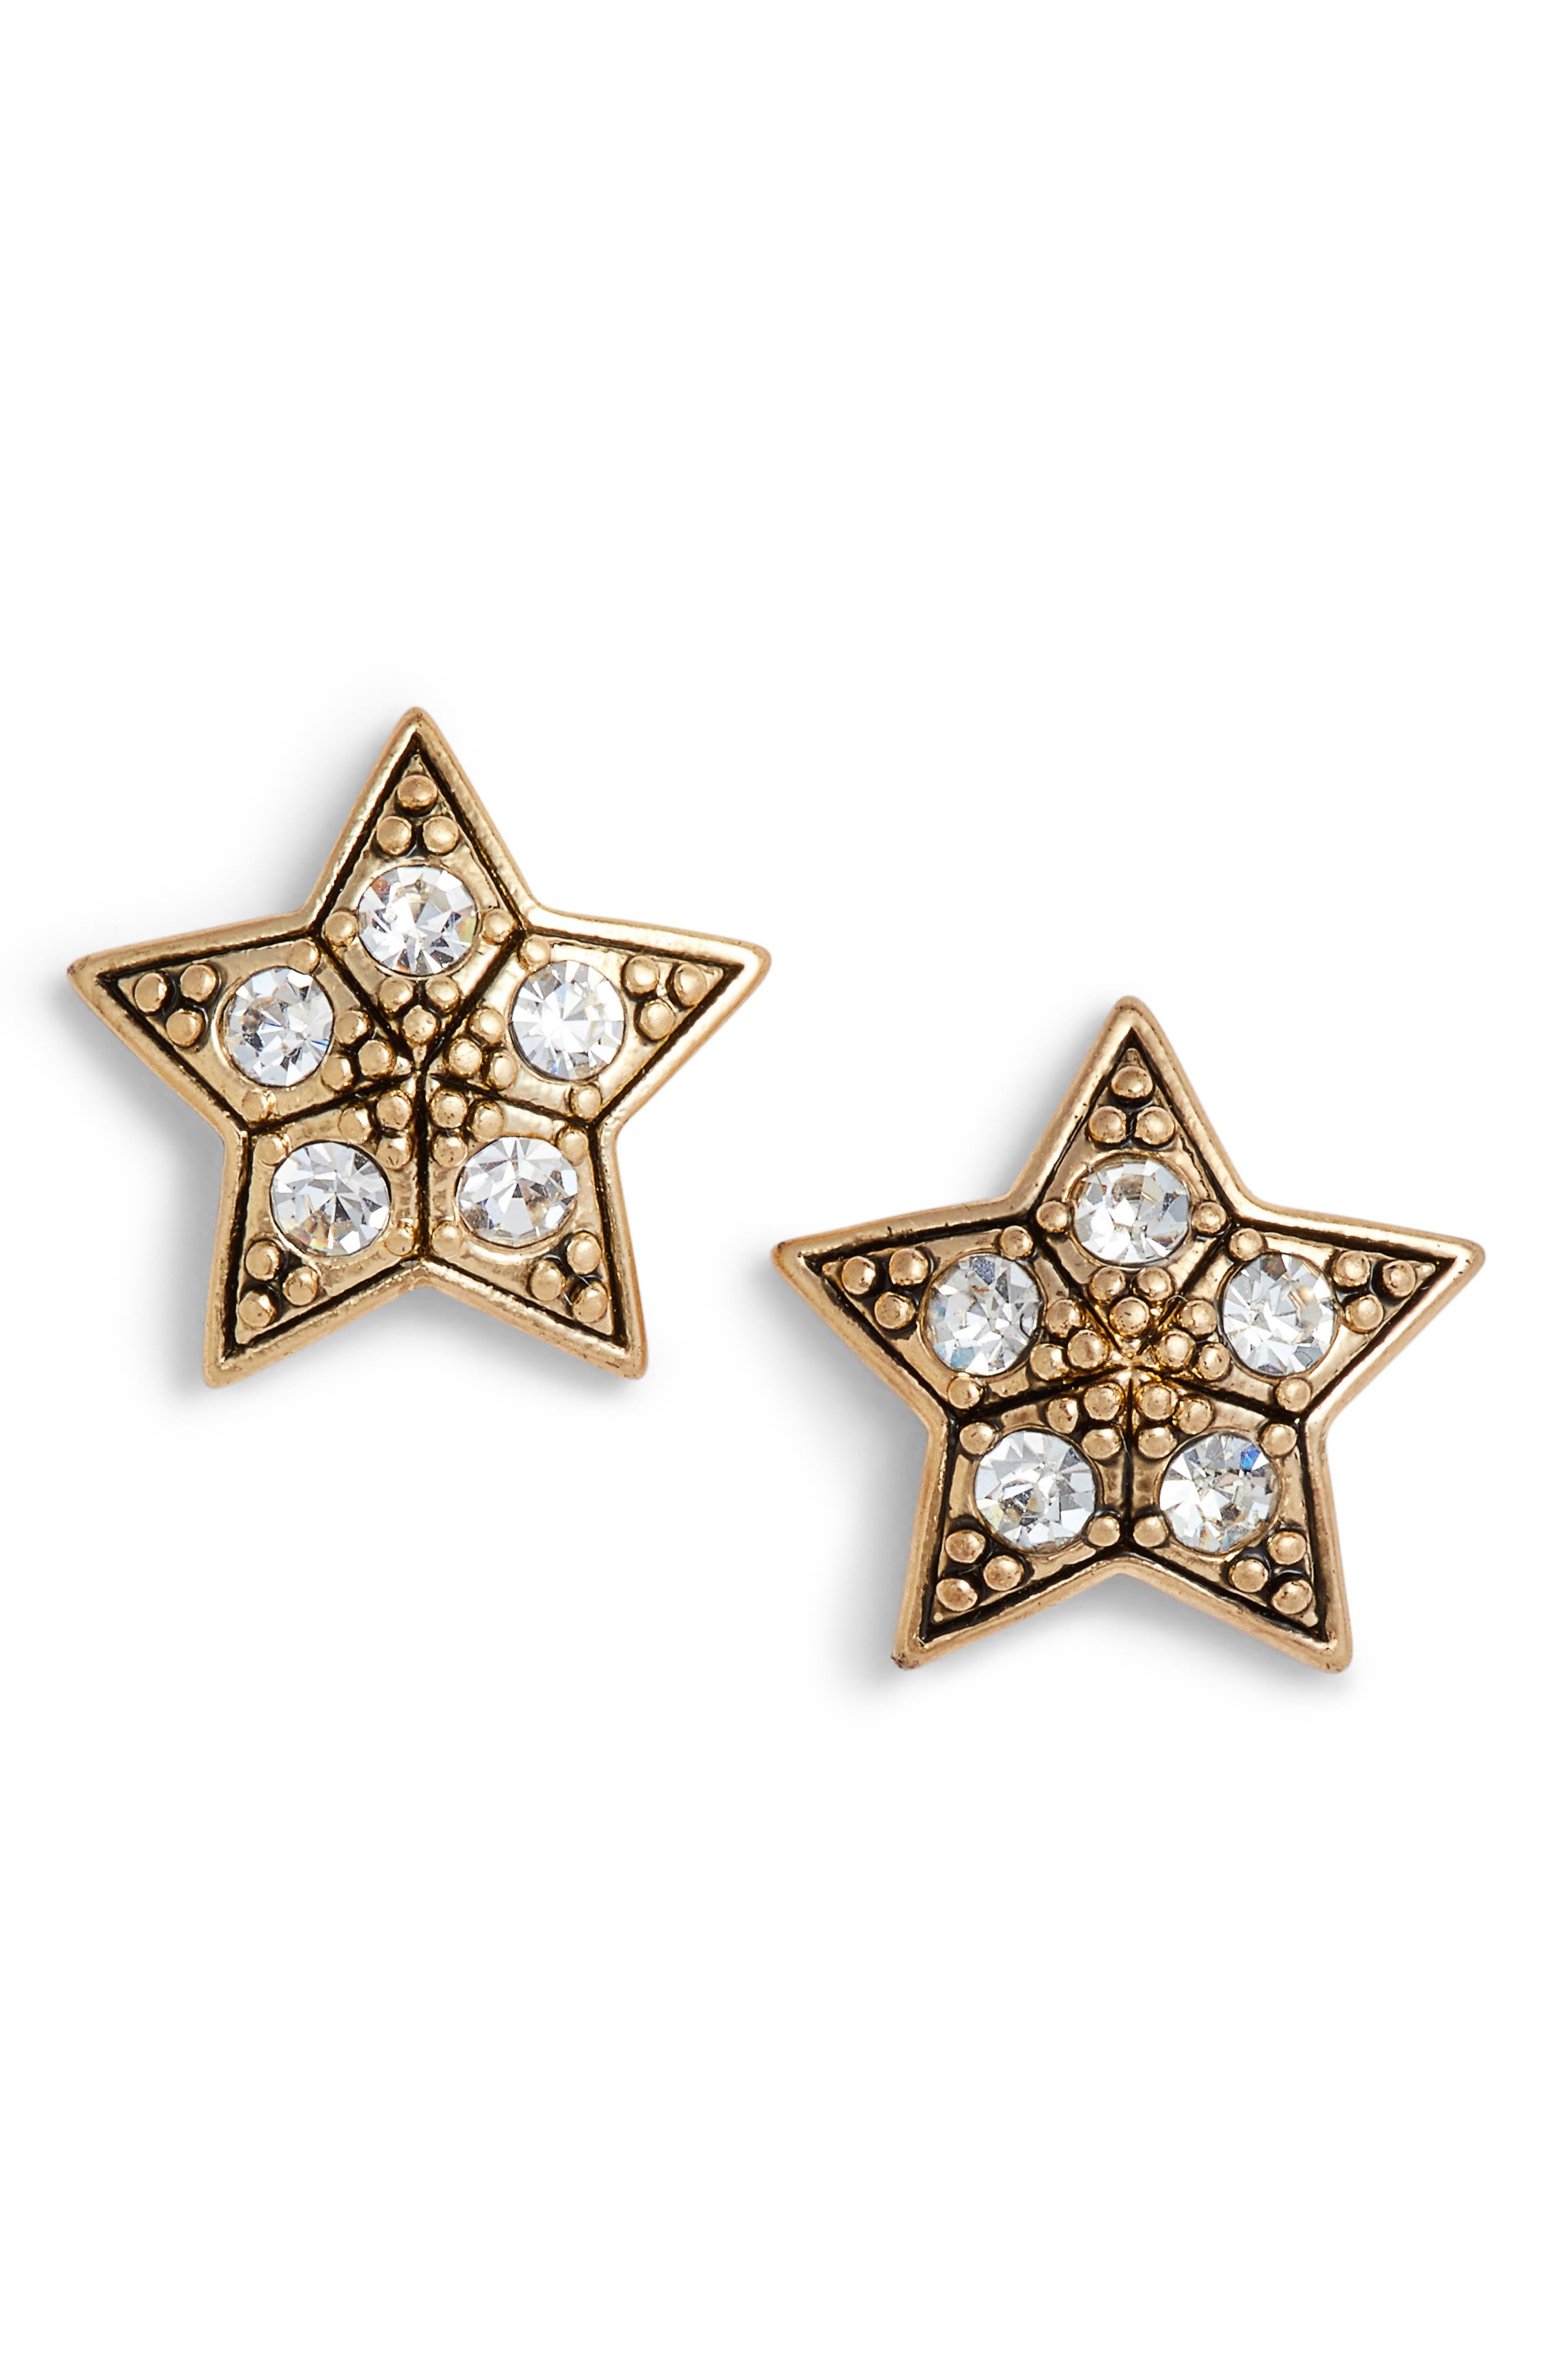 Jenny Packham Star Stud Earrings